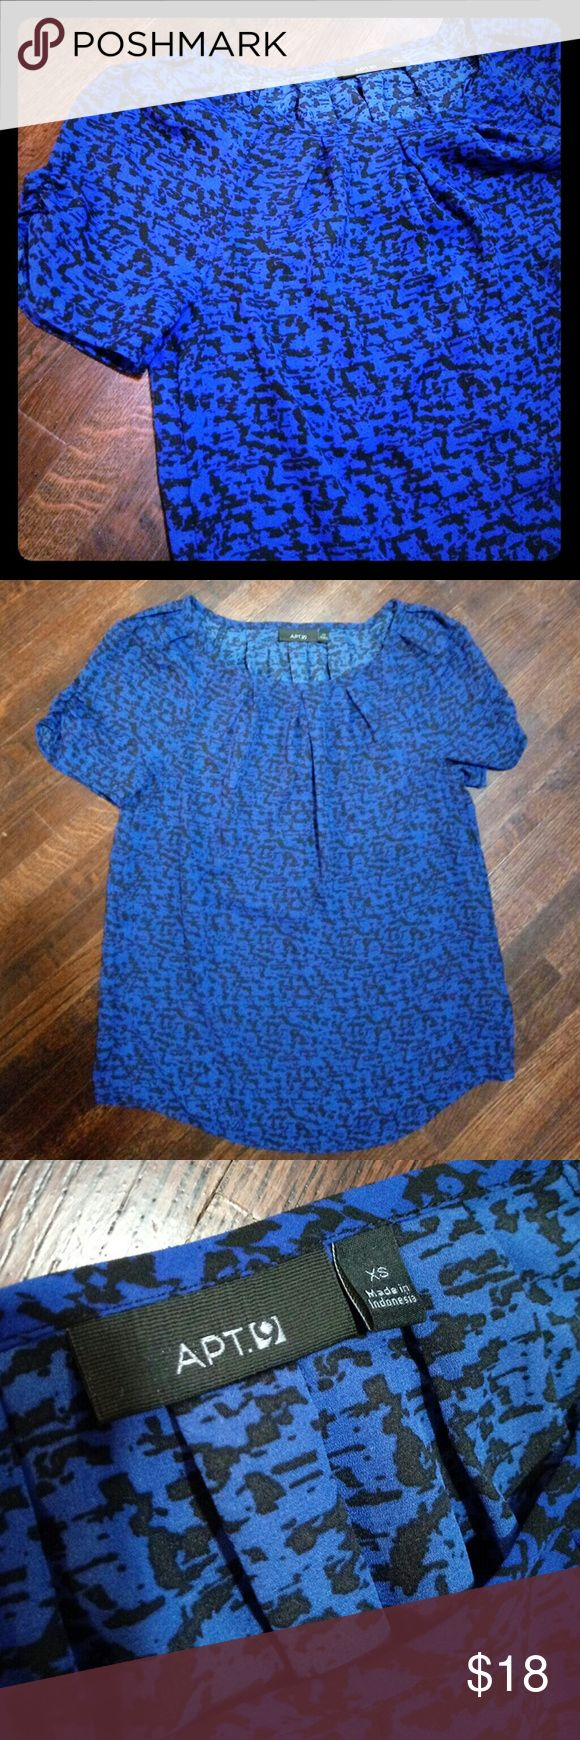 Royal Blue Blouse This royal blue top is cheetah print. NWOT. Size extra small, but can fit a small. This top is super cute and looks great under a blazer or just on it's own. Apt. 9 Tops Blouses